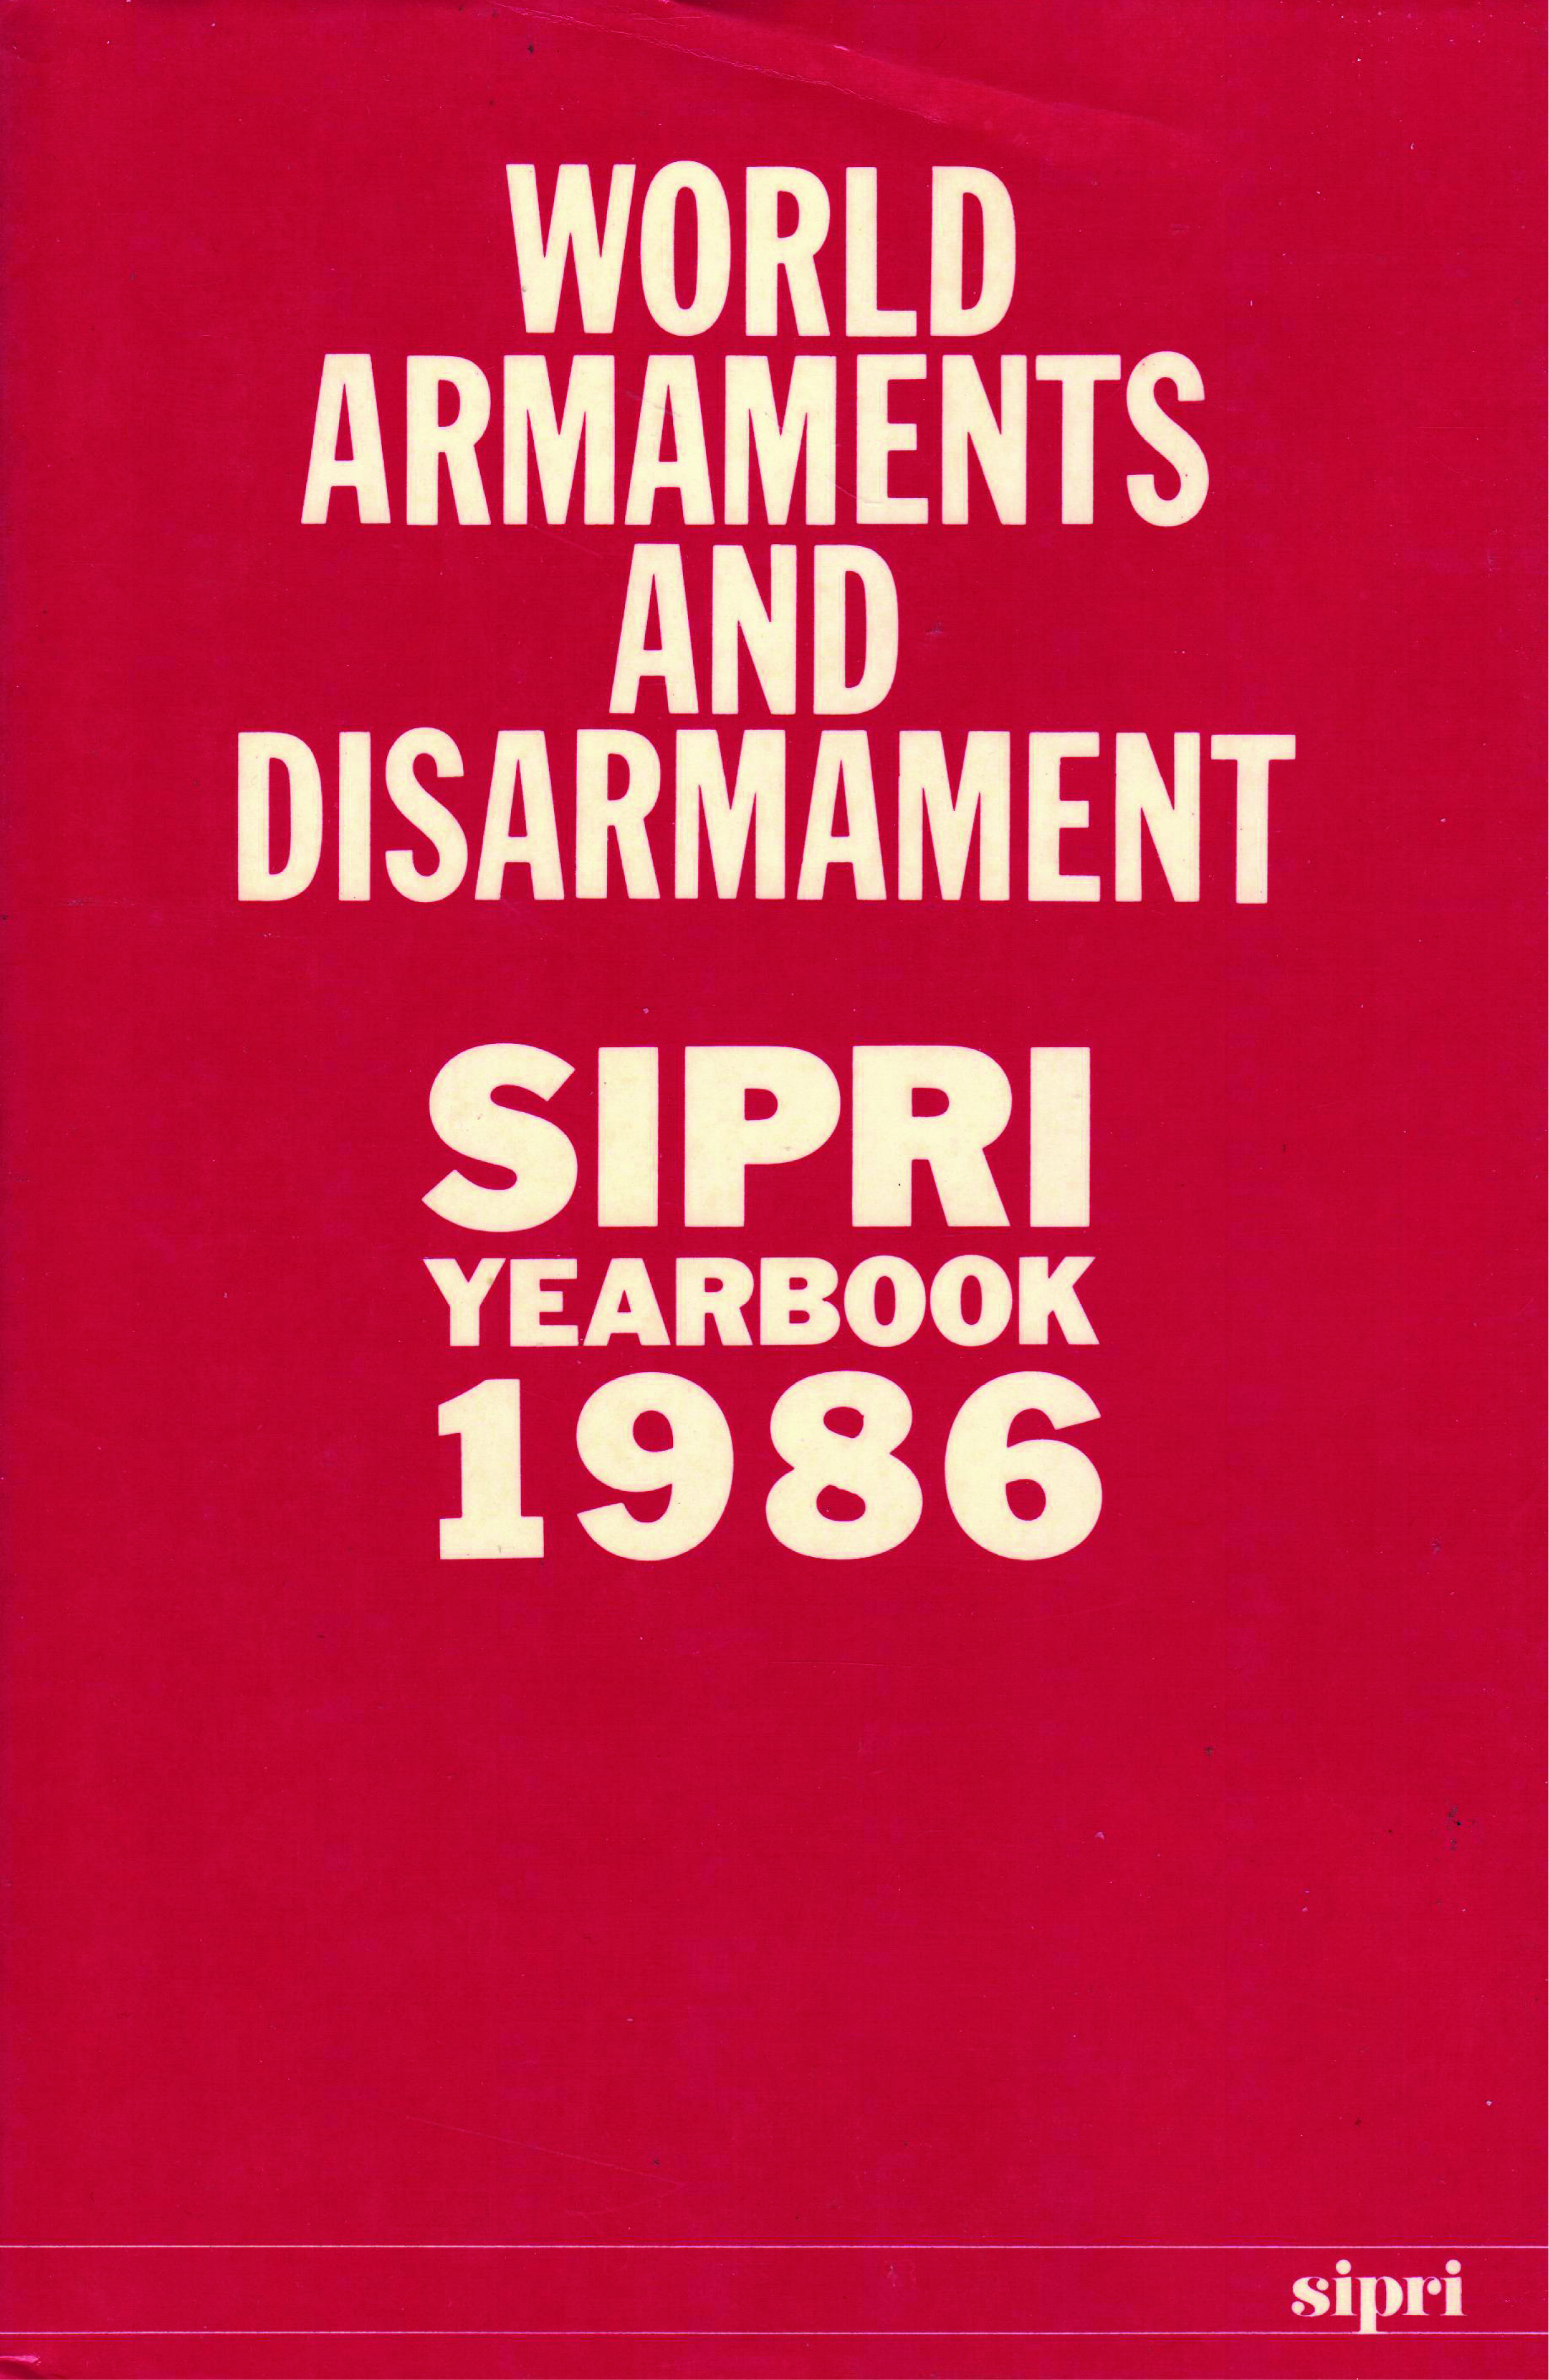 SIPRI yearbook 1986 cover